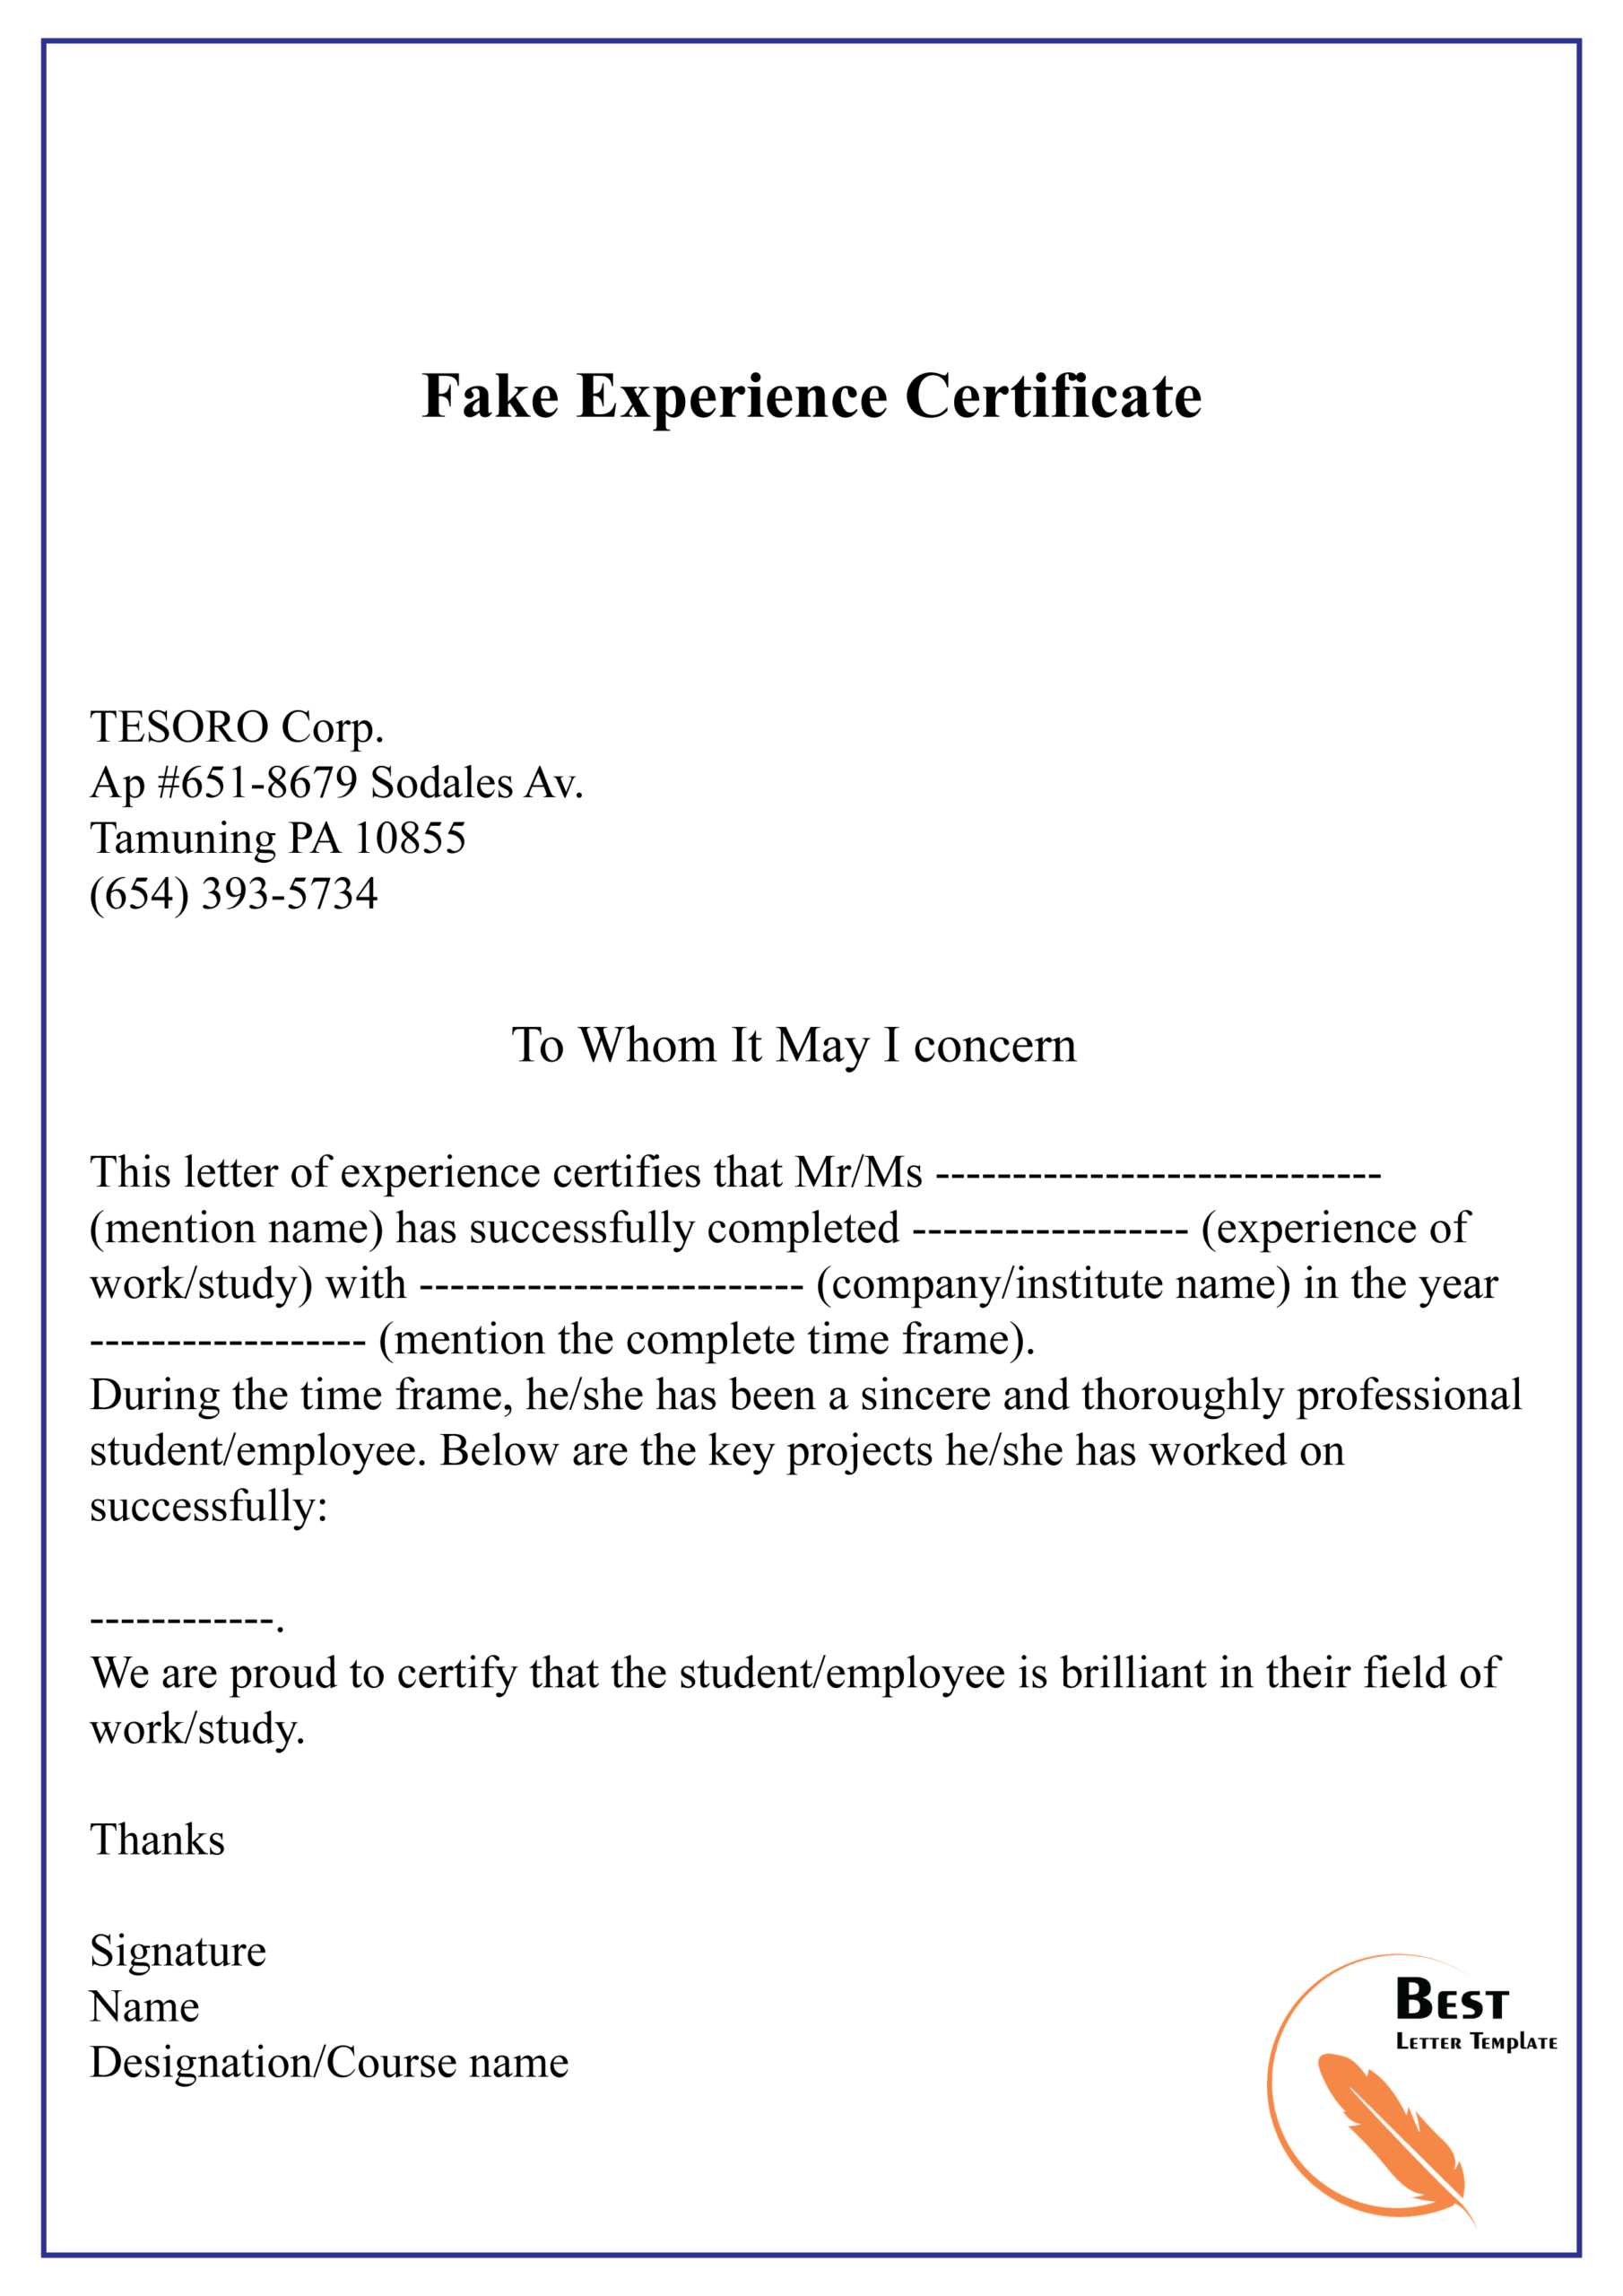 Fake Experience Certificate 01 | Best Letter Template Throughout Certificate Of Experience Template